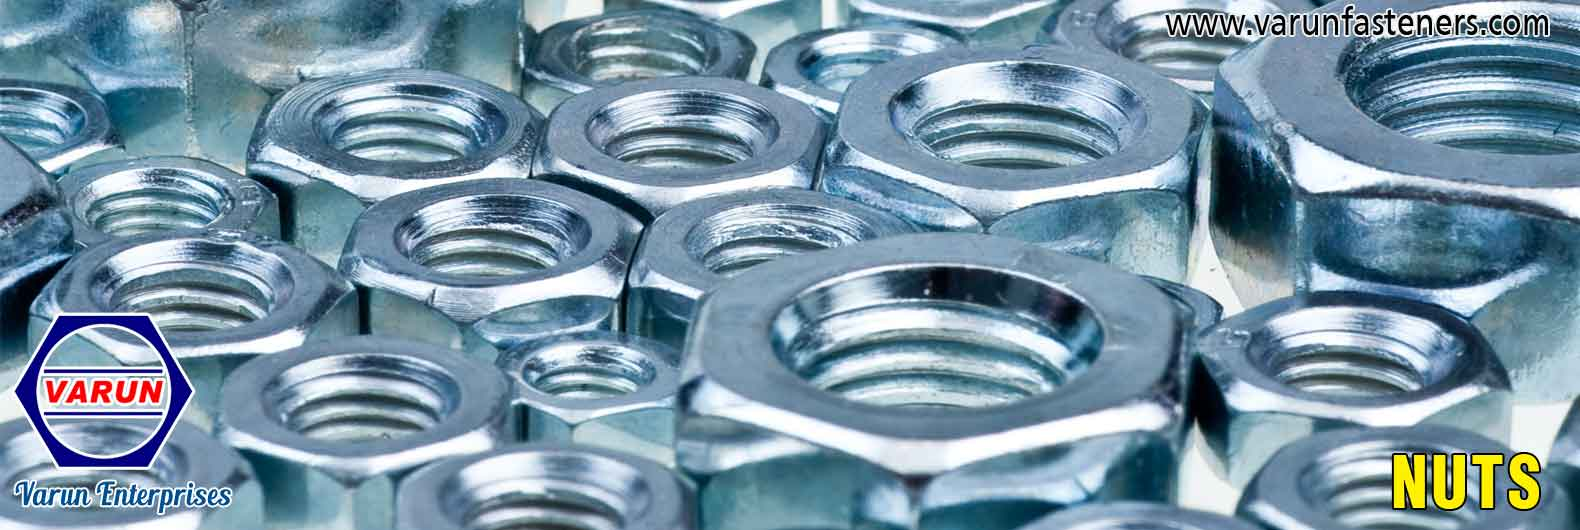 High Tensile Nuts Forged Nuts Hex Nuts Hexagonal Nuts manufacturers exporters suppliers in India